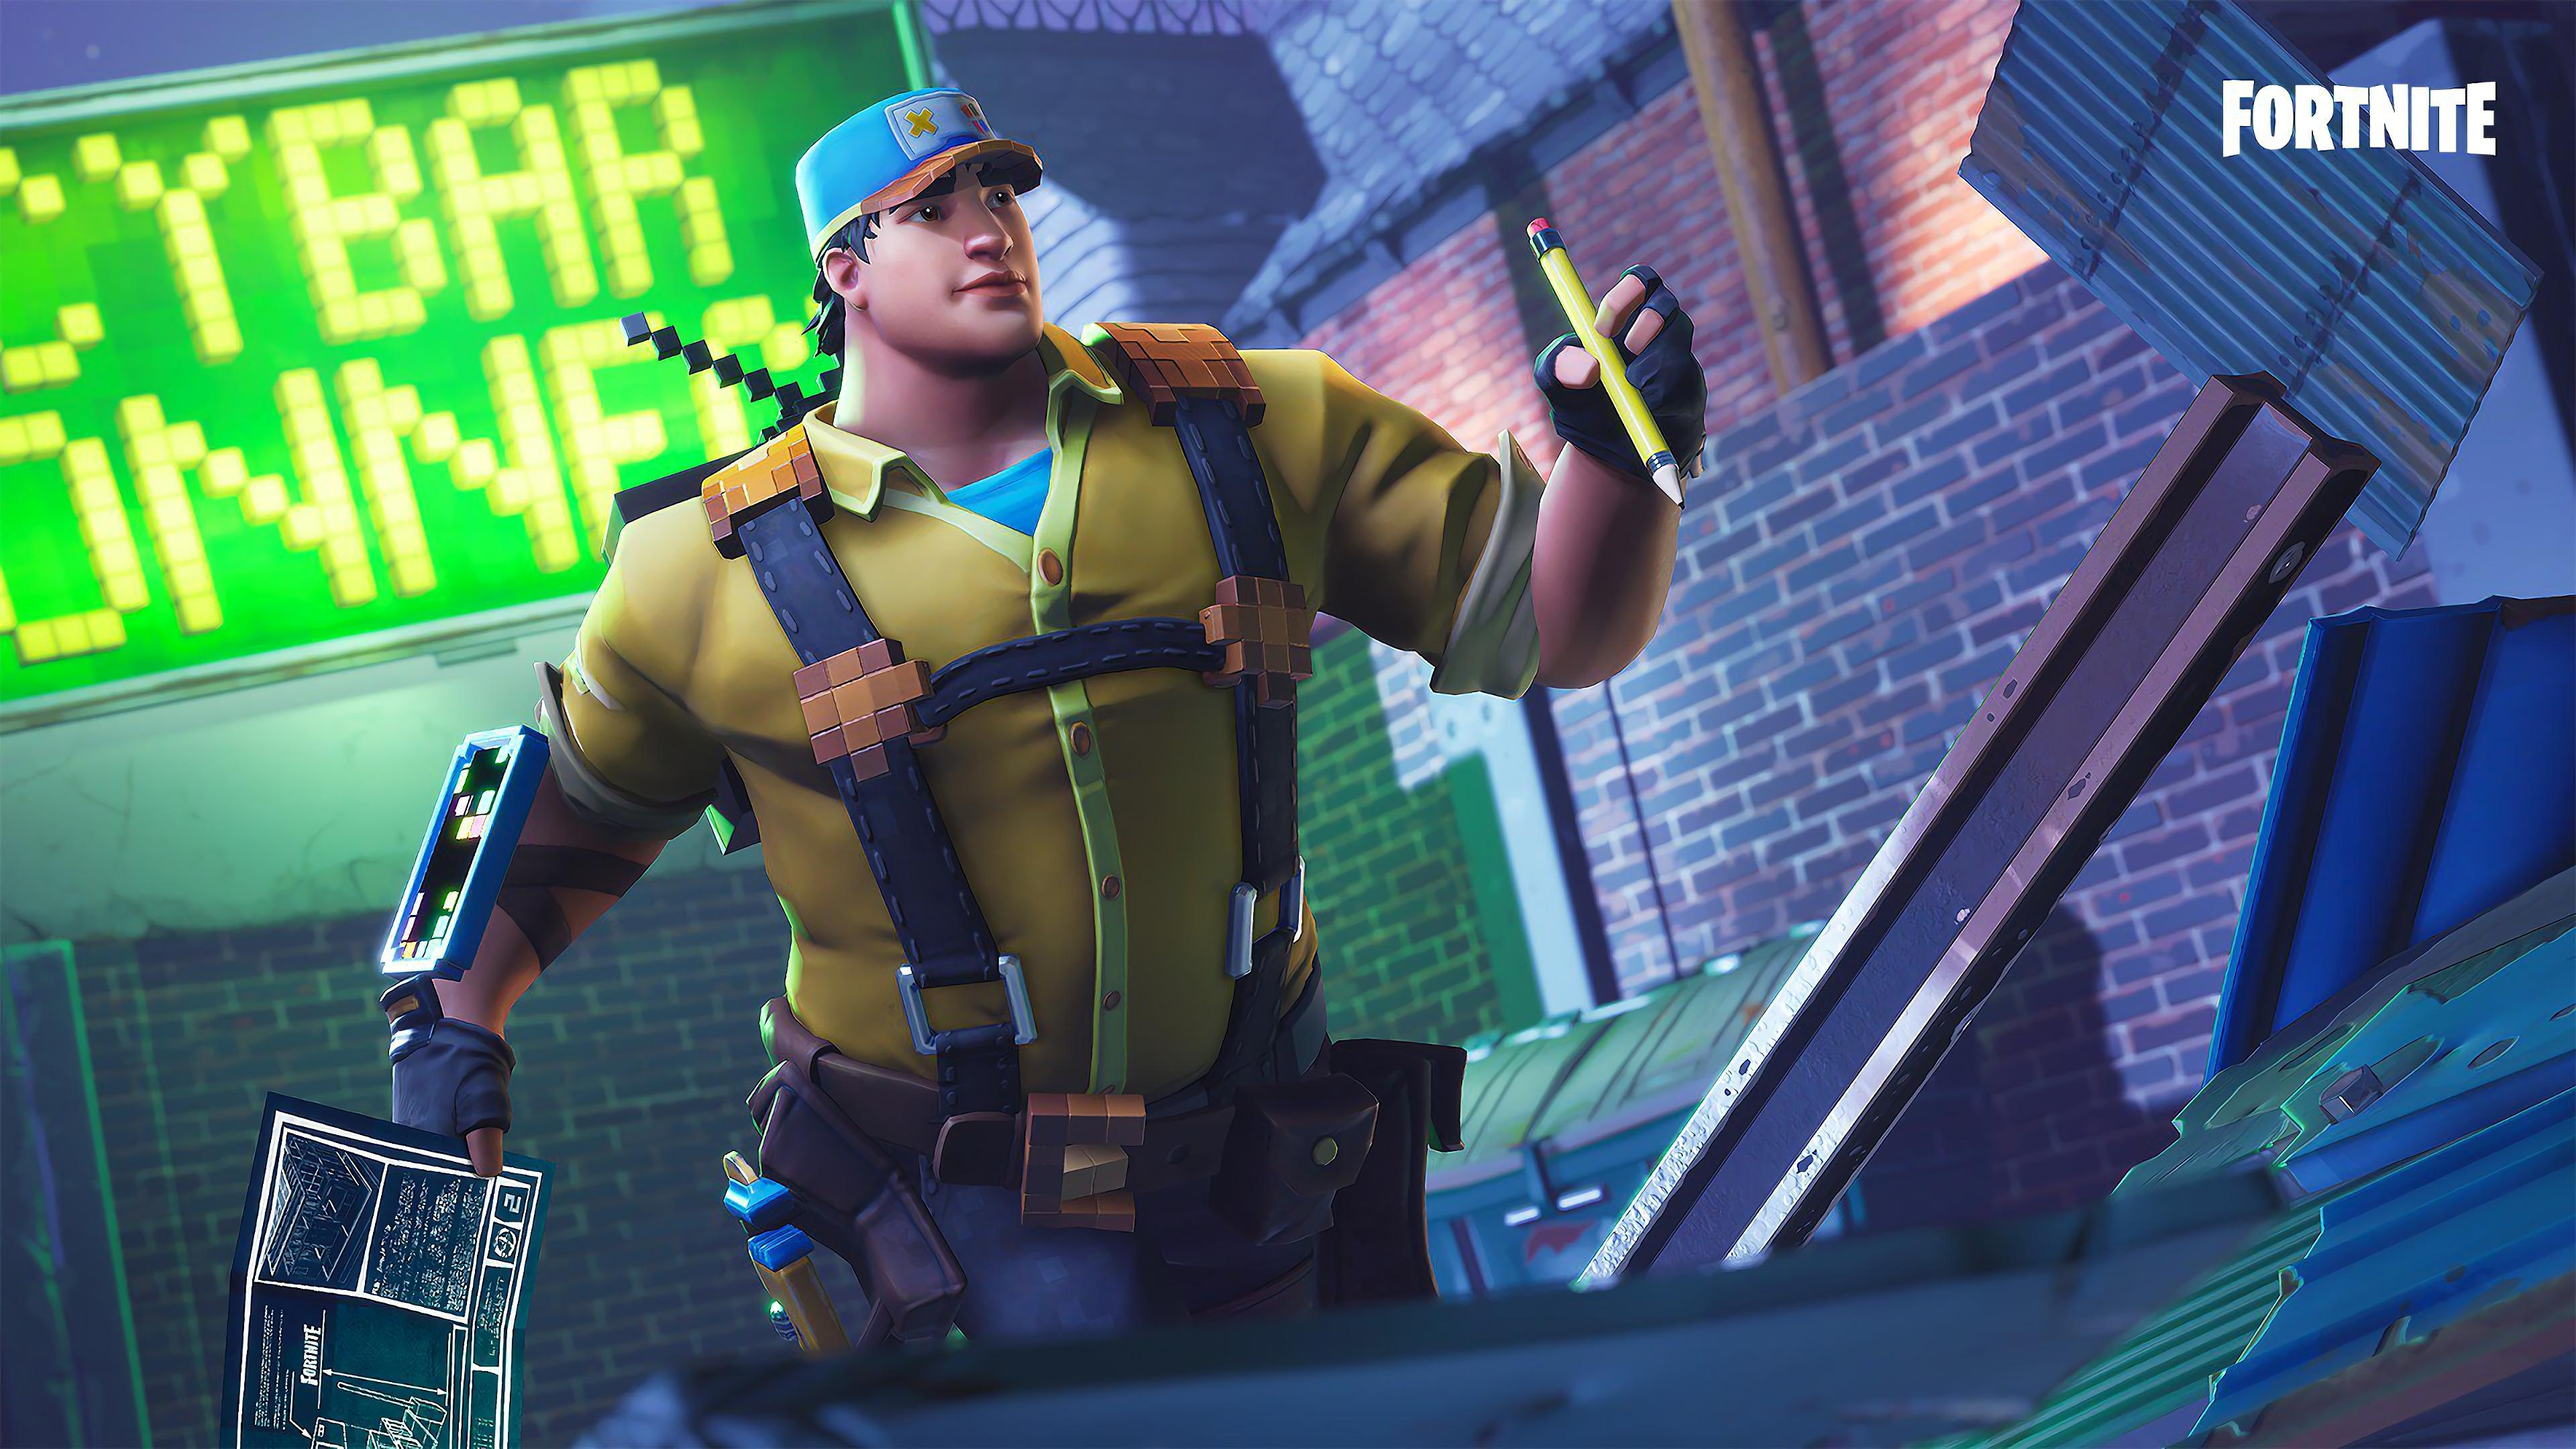 FORTNITE 8 BIT DEMO CONSTRUCTOR 4k Ultra HD Wallpapers